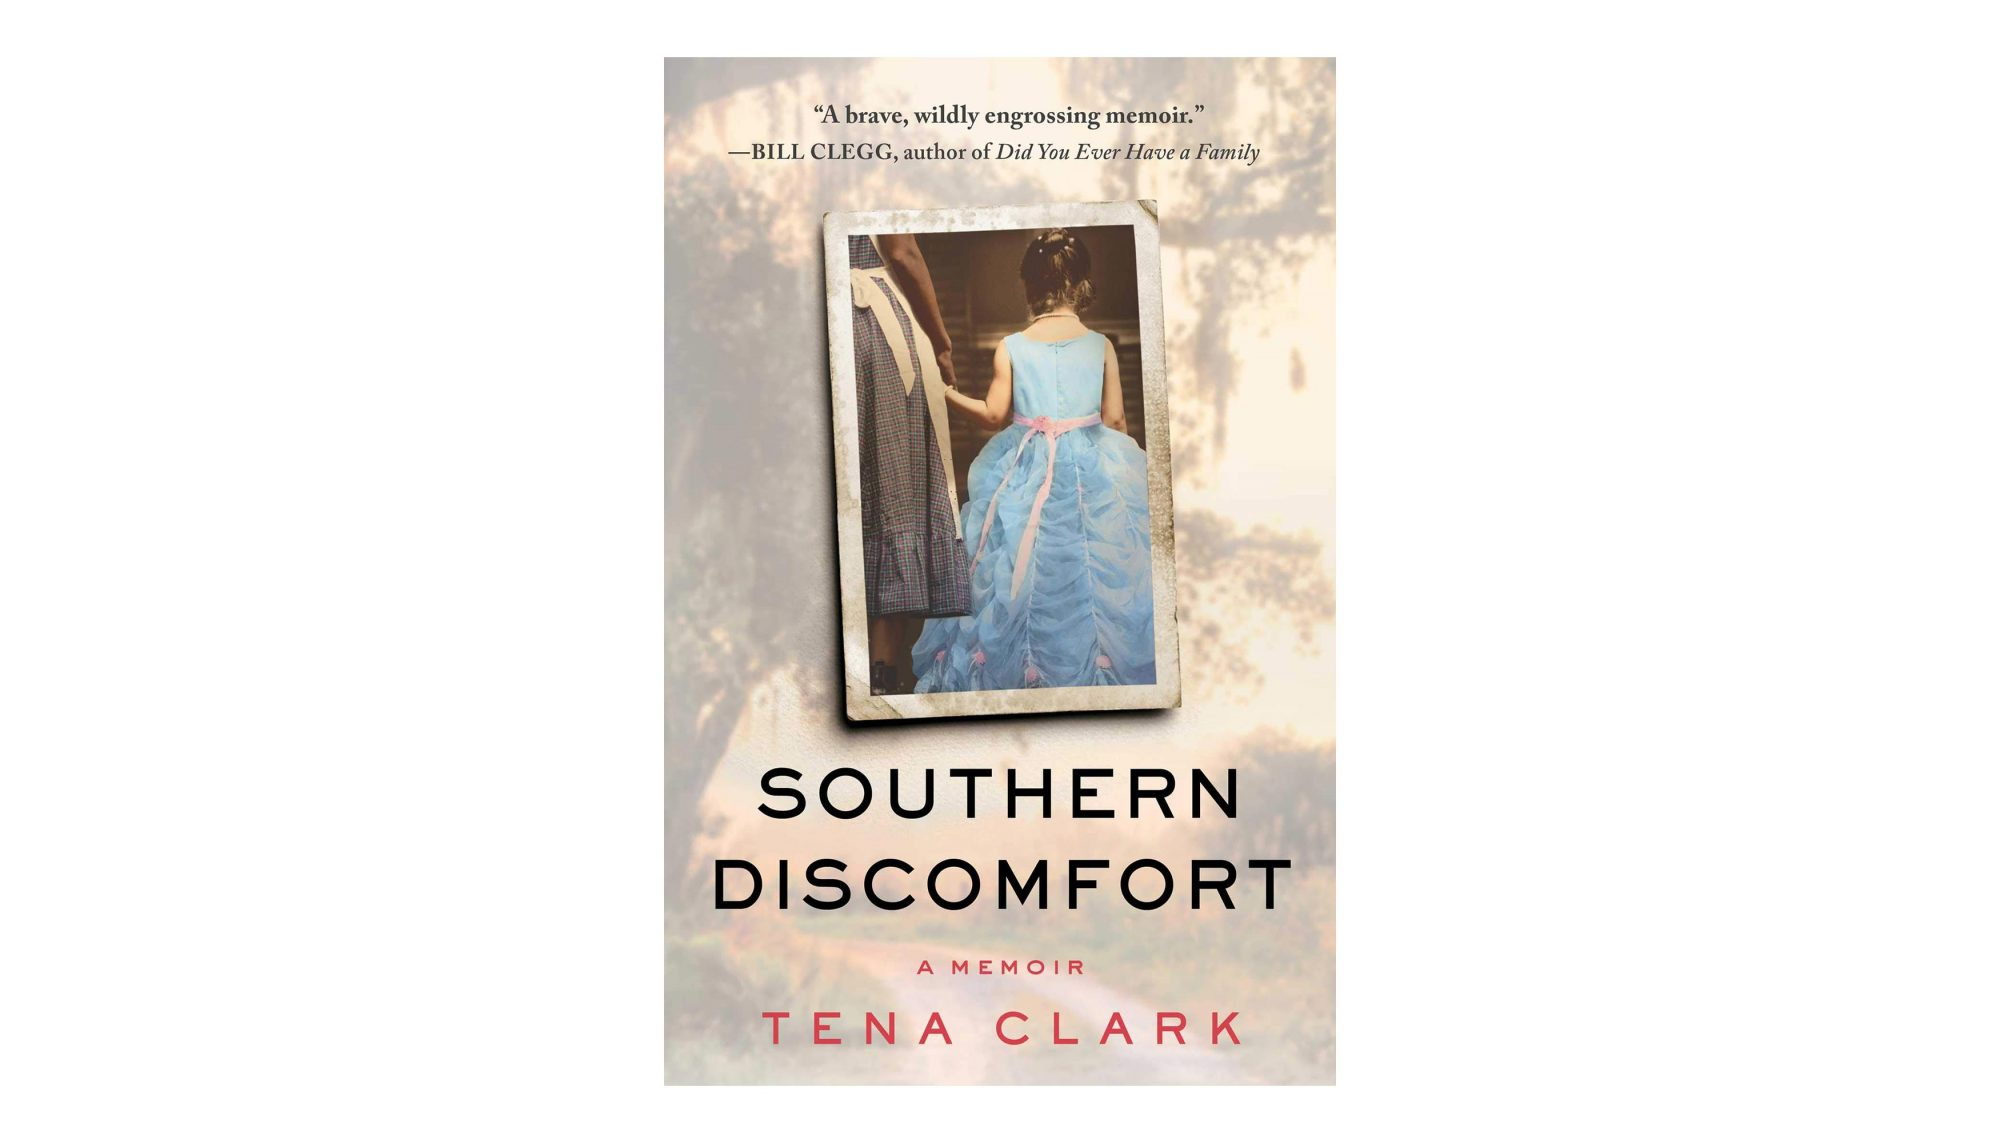 Southern Discomfort, by Tena Clark